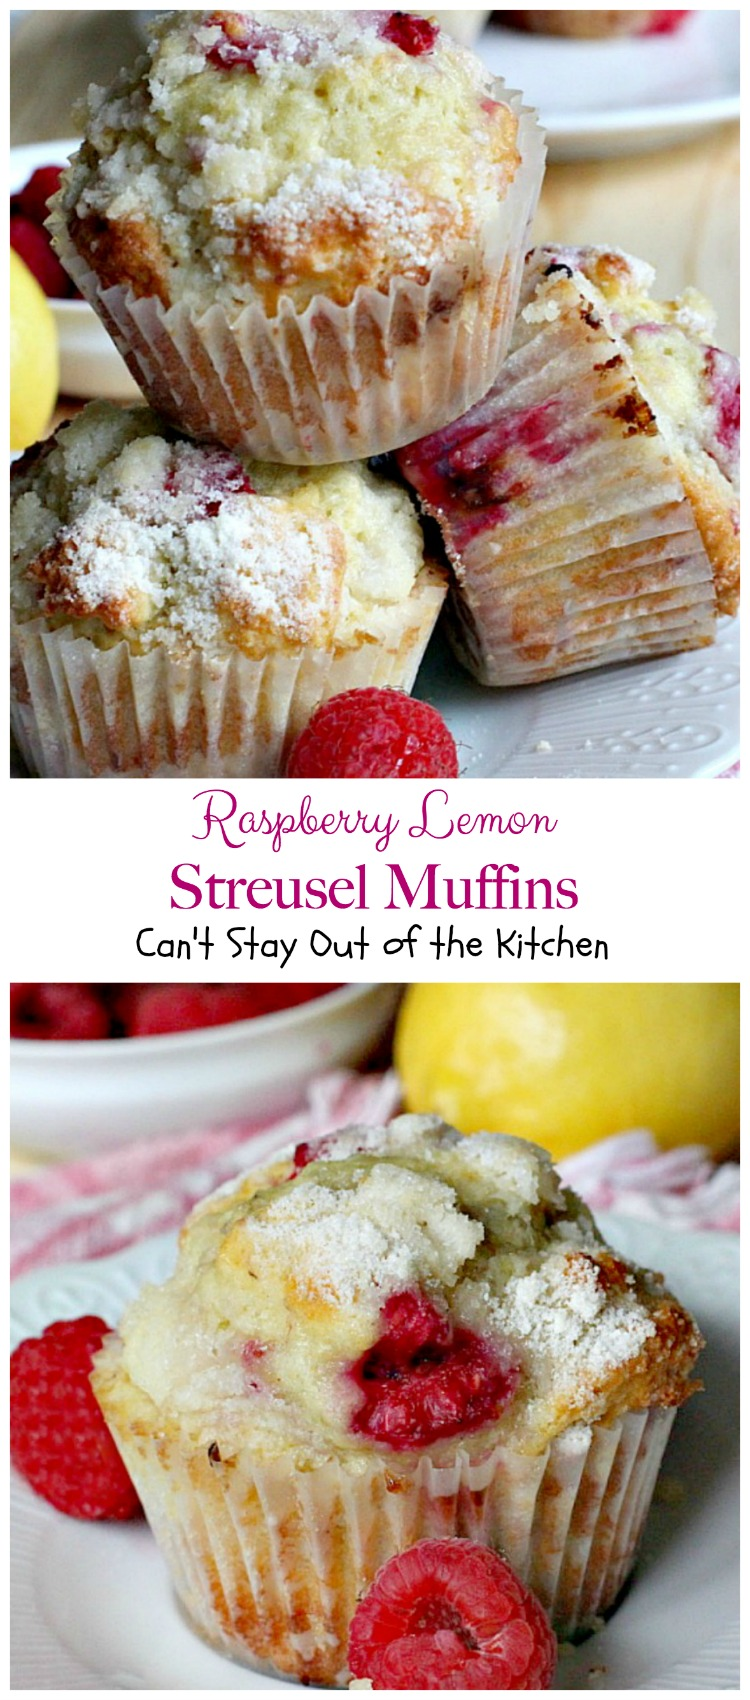 Raspberry Lemon Streusel Muffins   Can't Stay Out of the Kitchen